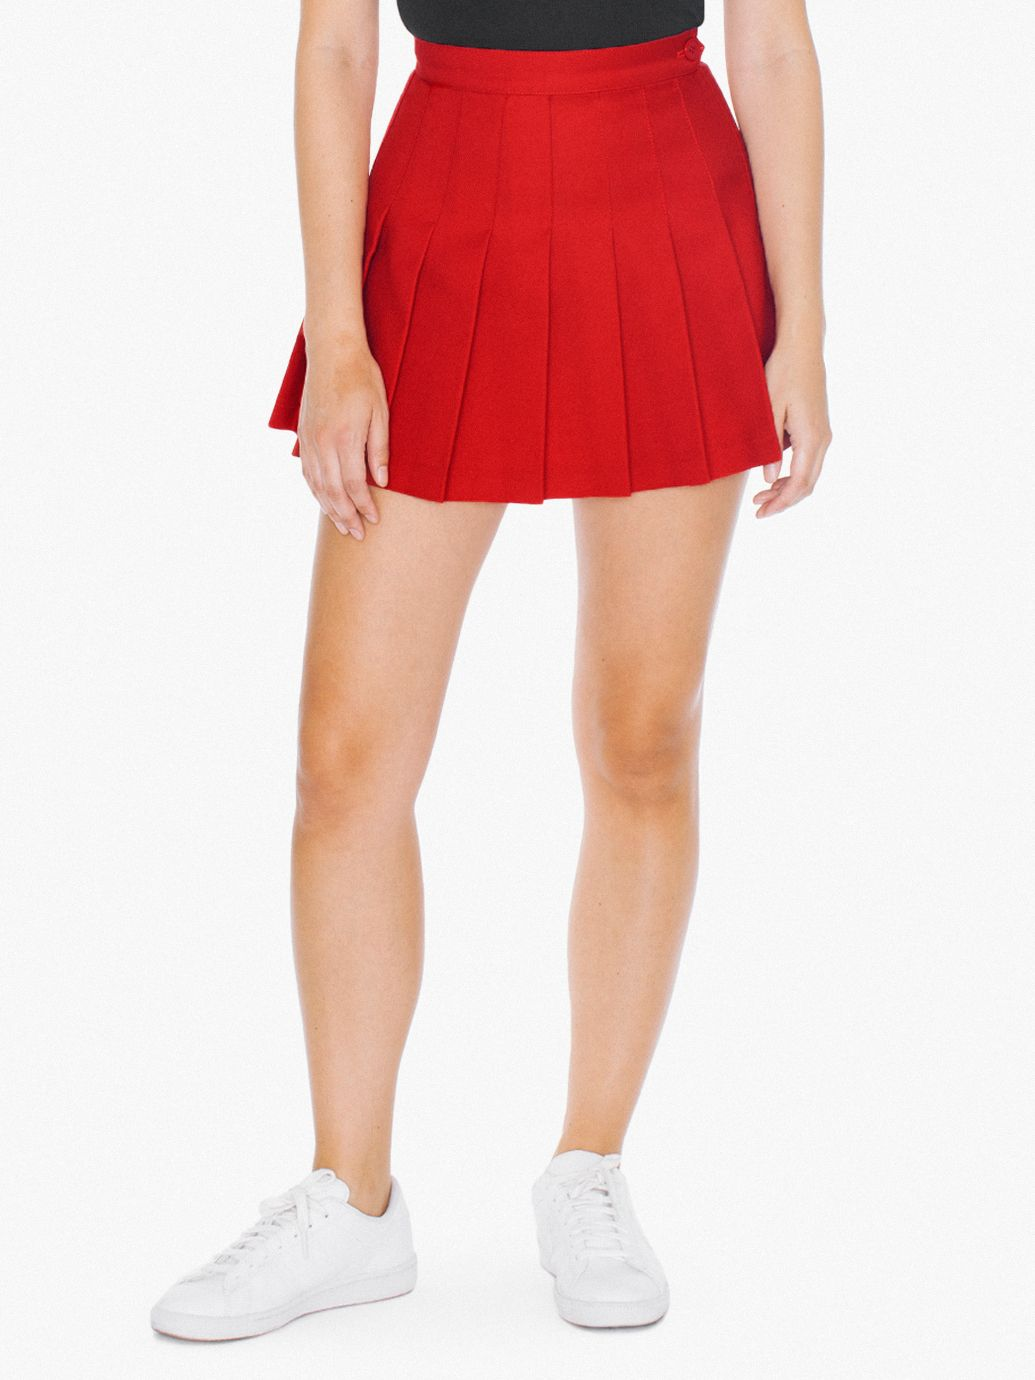 AMA Tennis Skirt For Her